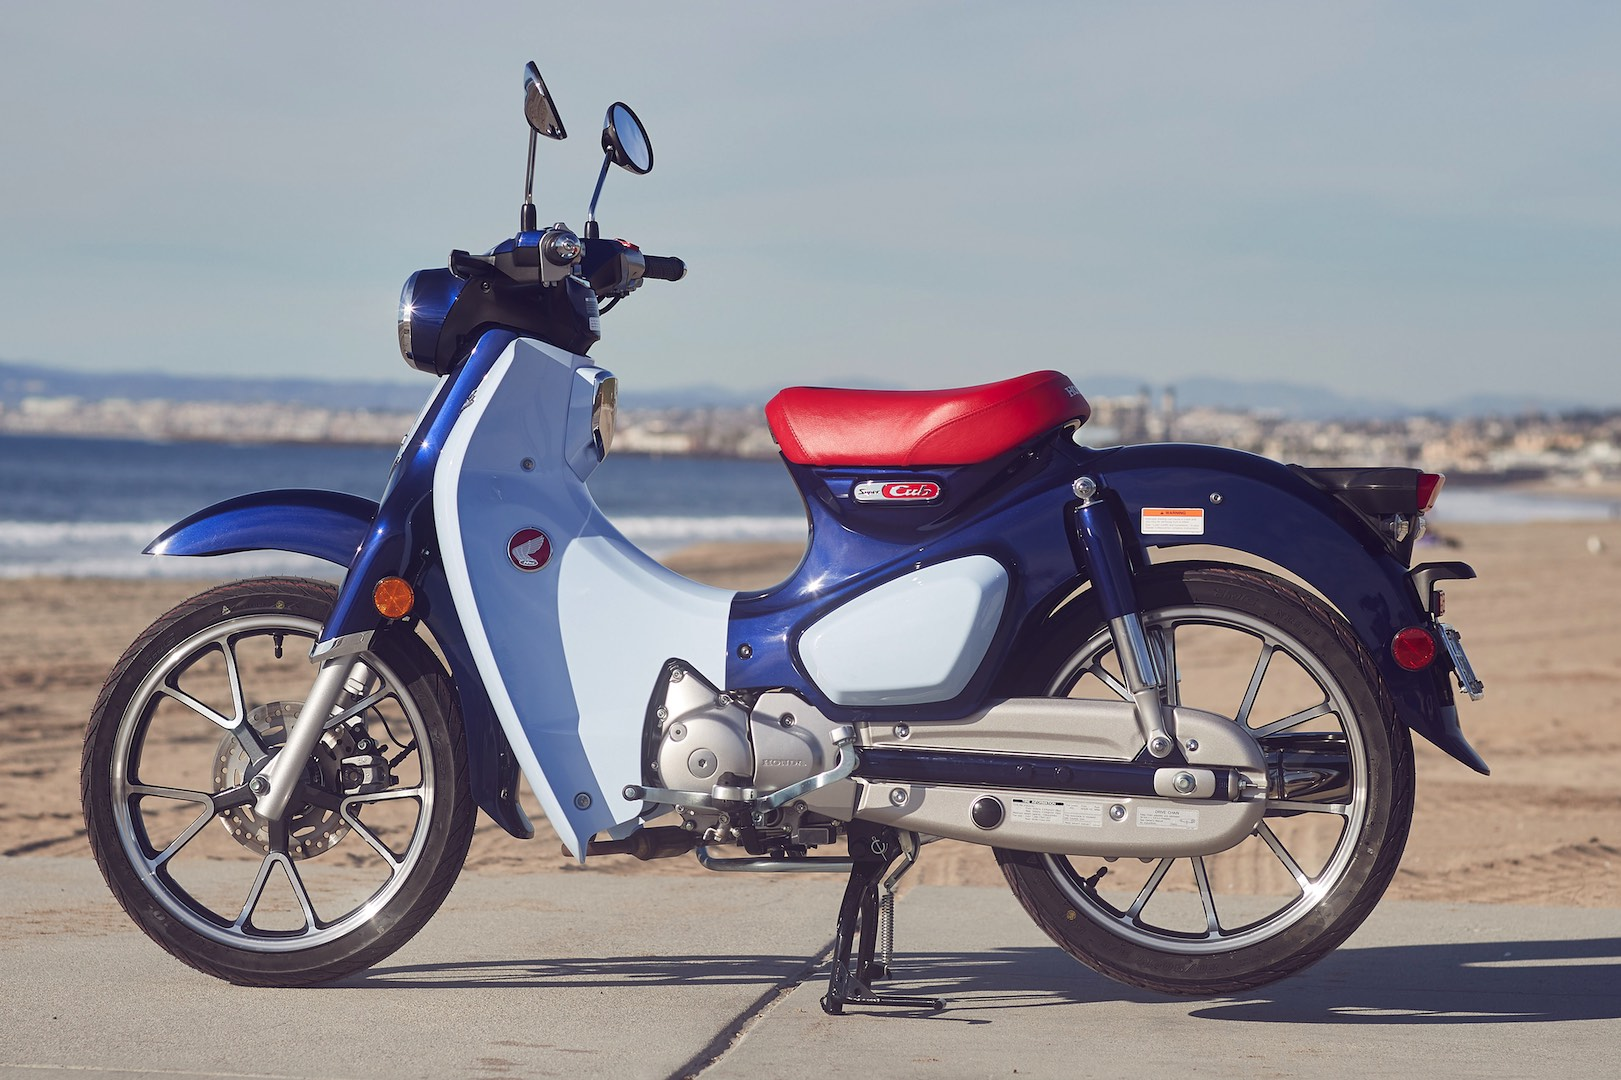 2019 Honda Super Cub C125 Abs Review 16 Fast Facts